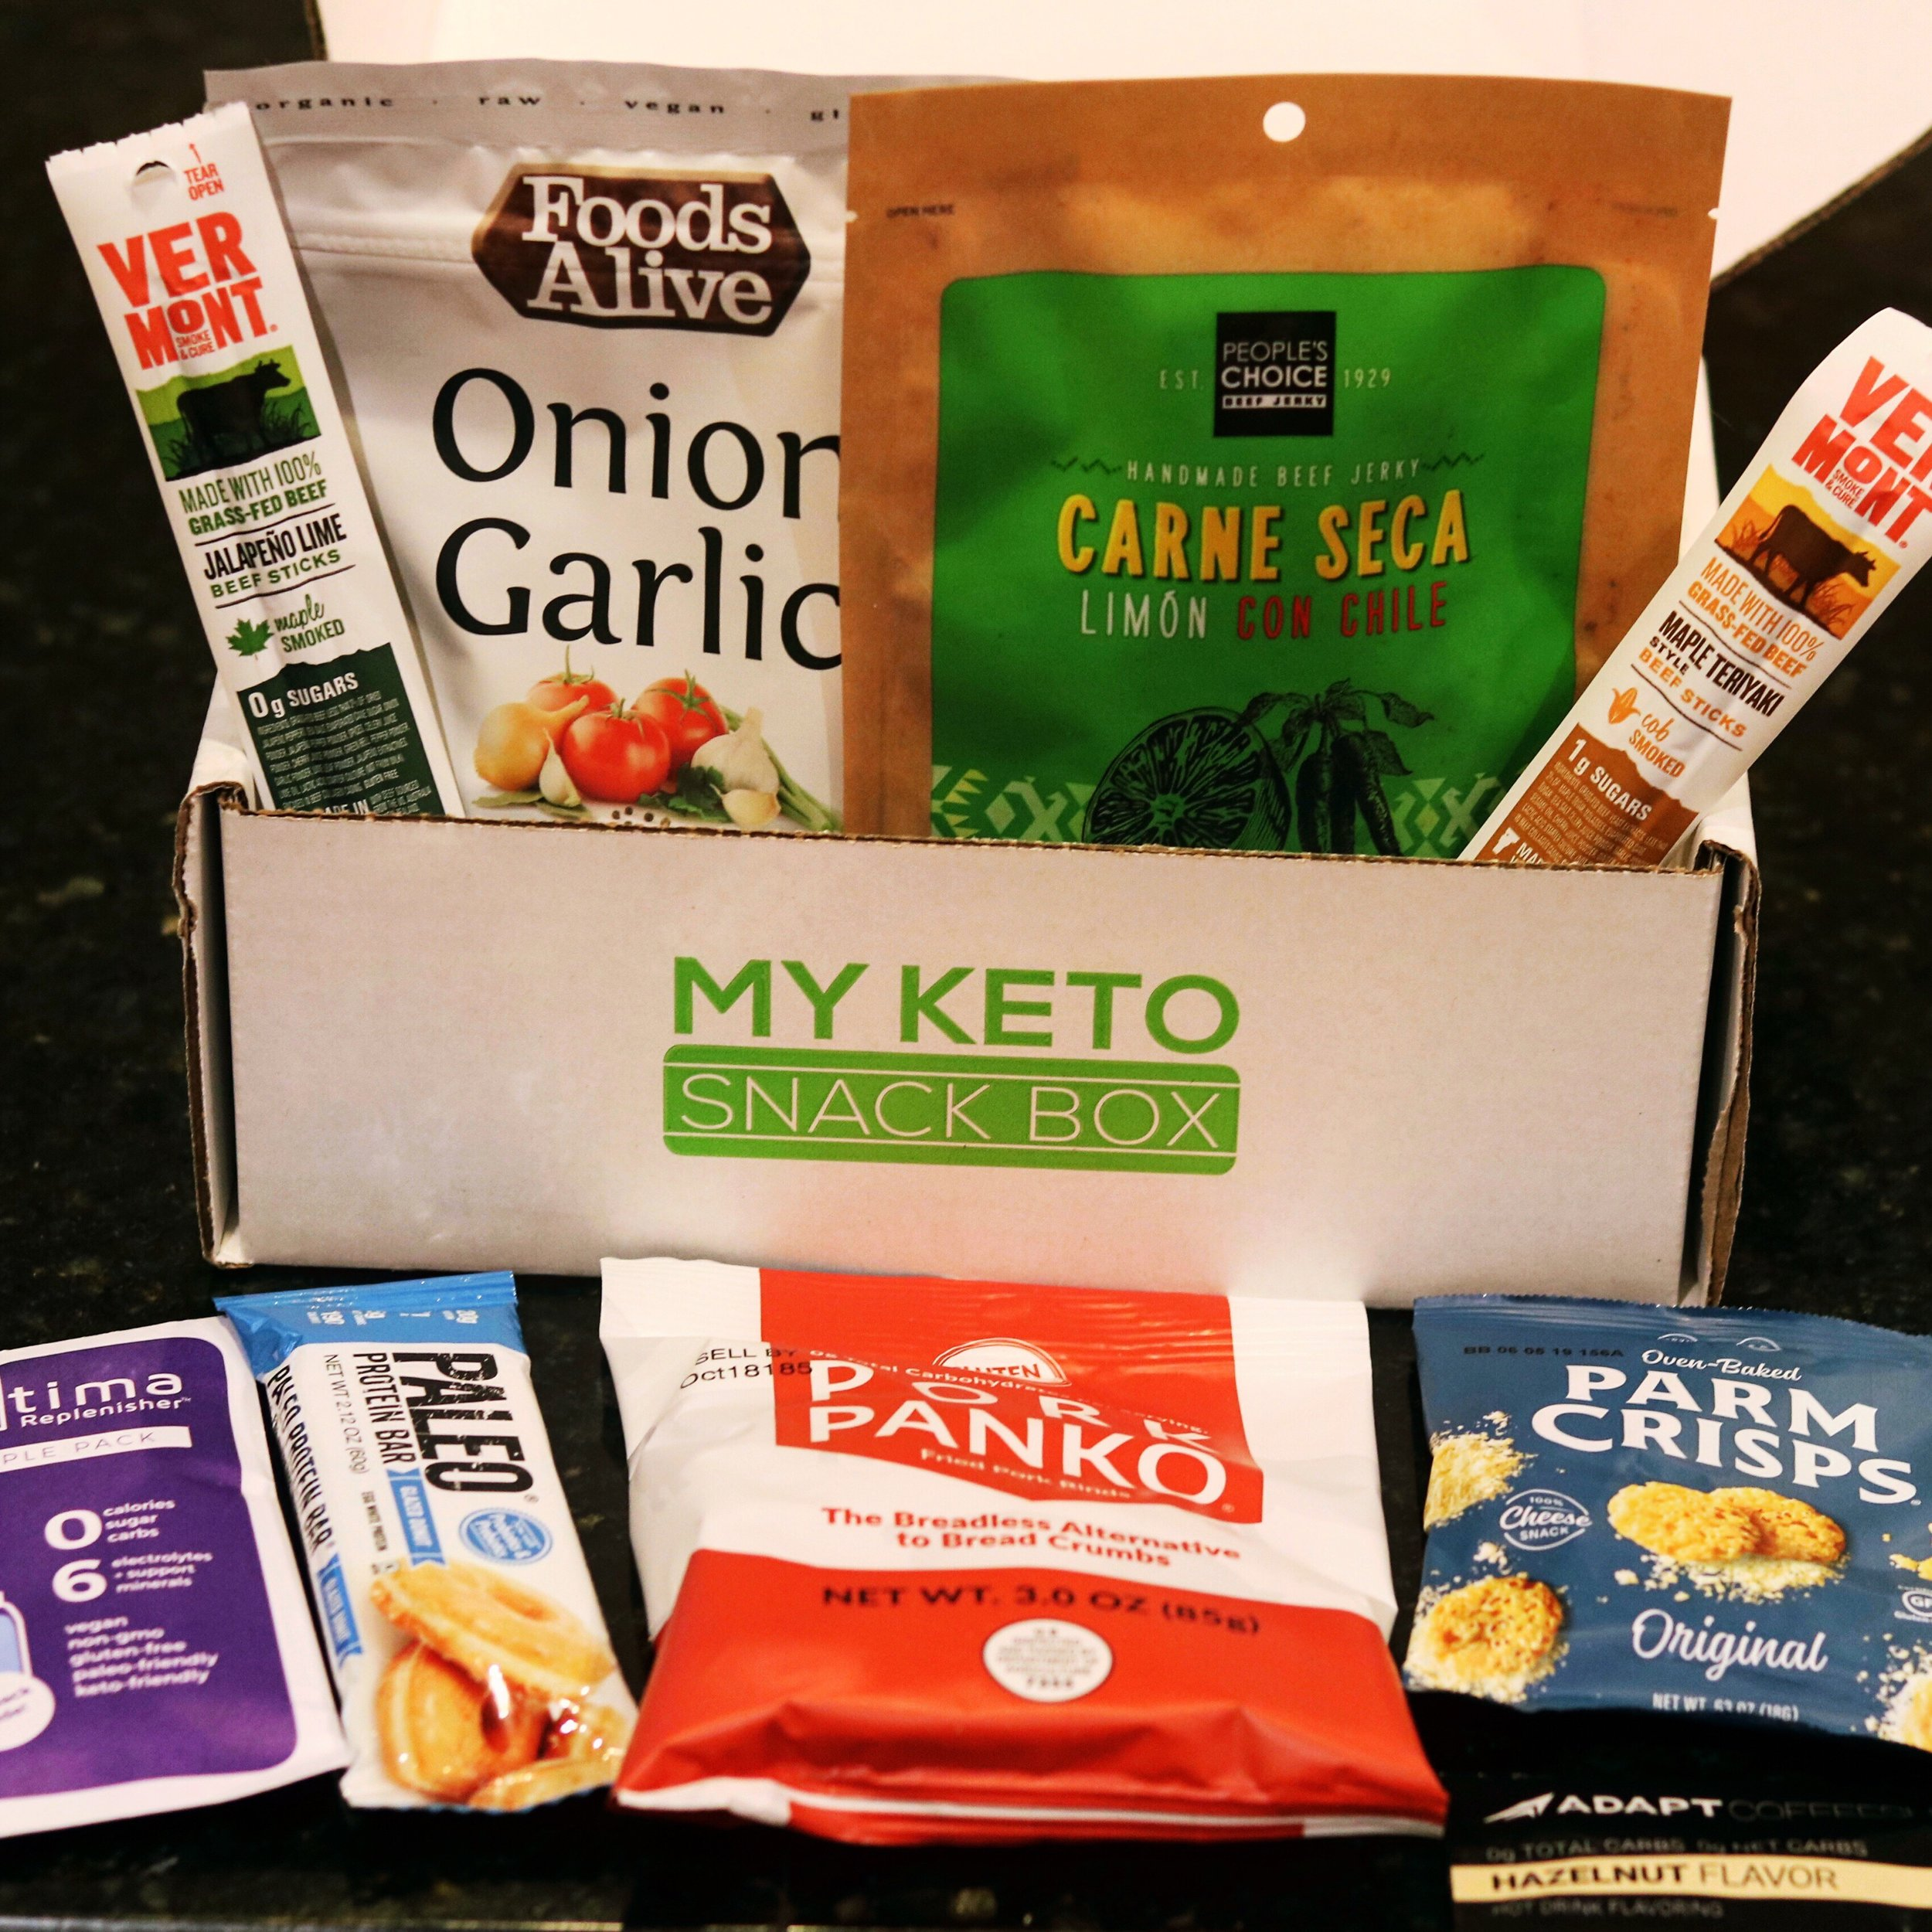 An assortment of items for My Keto Snack Box